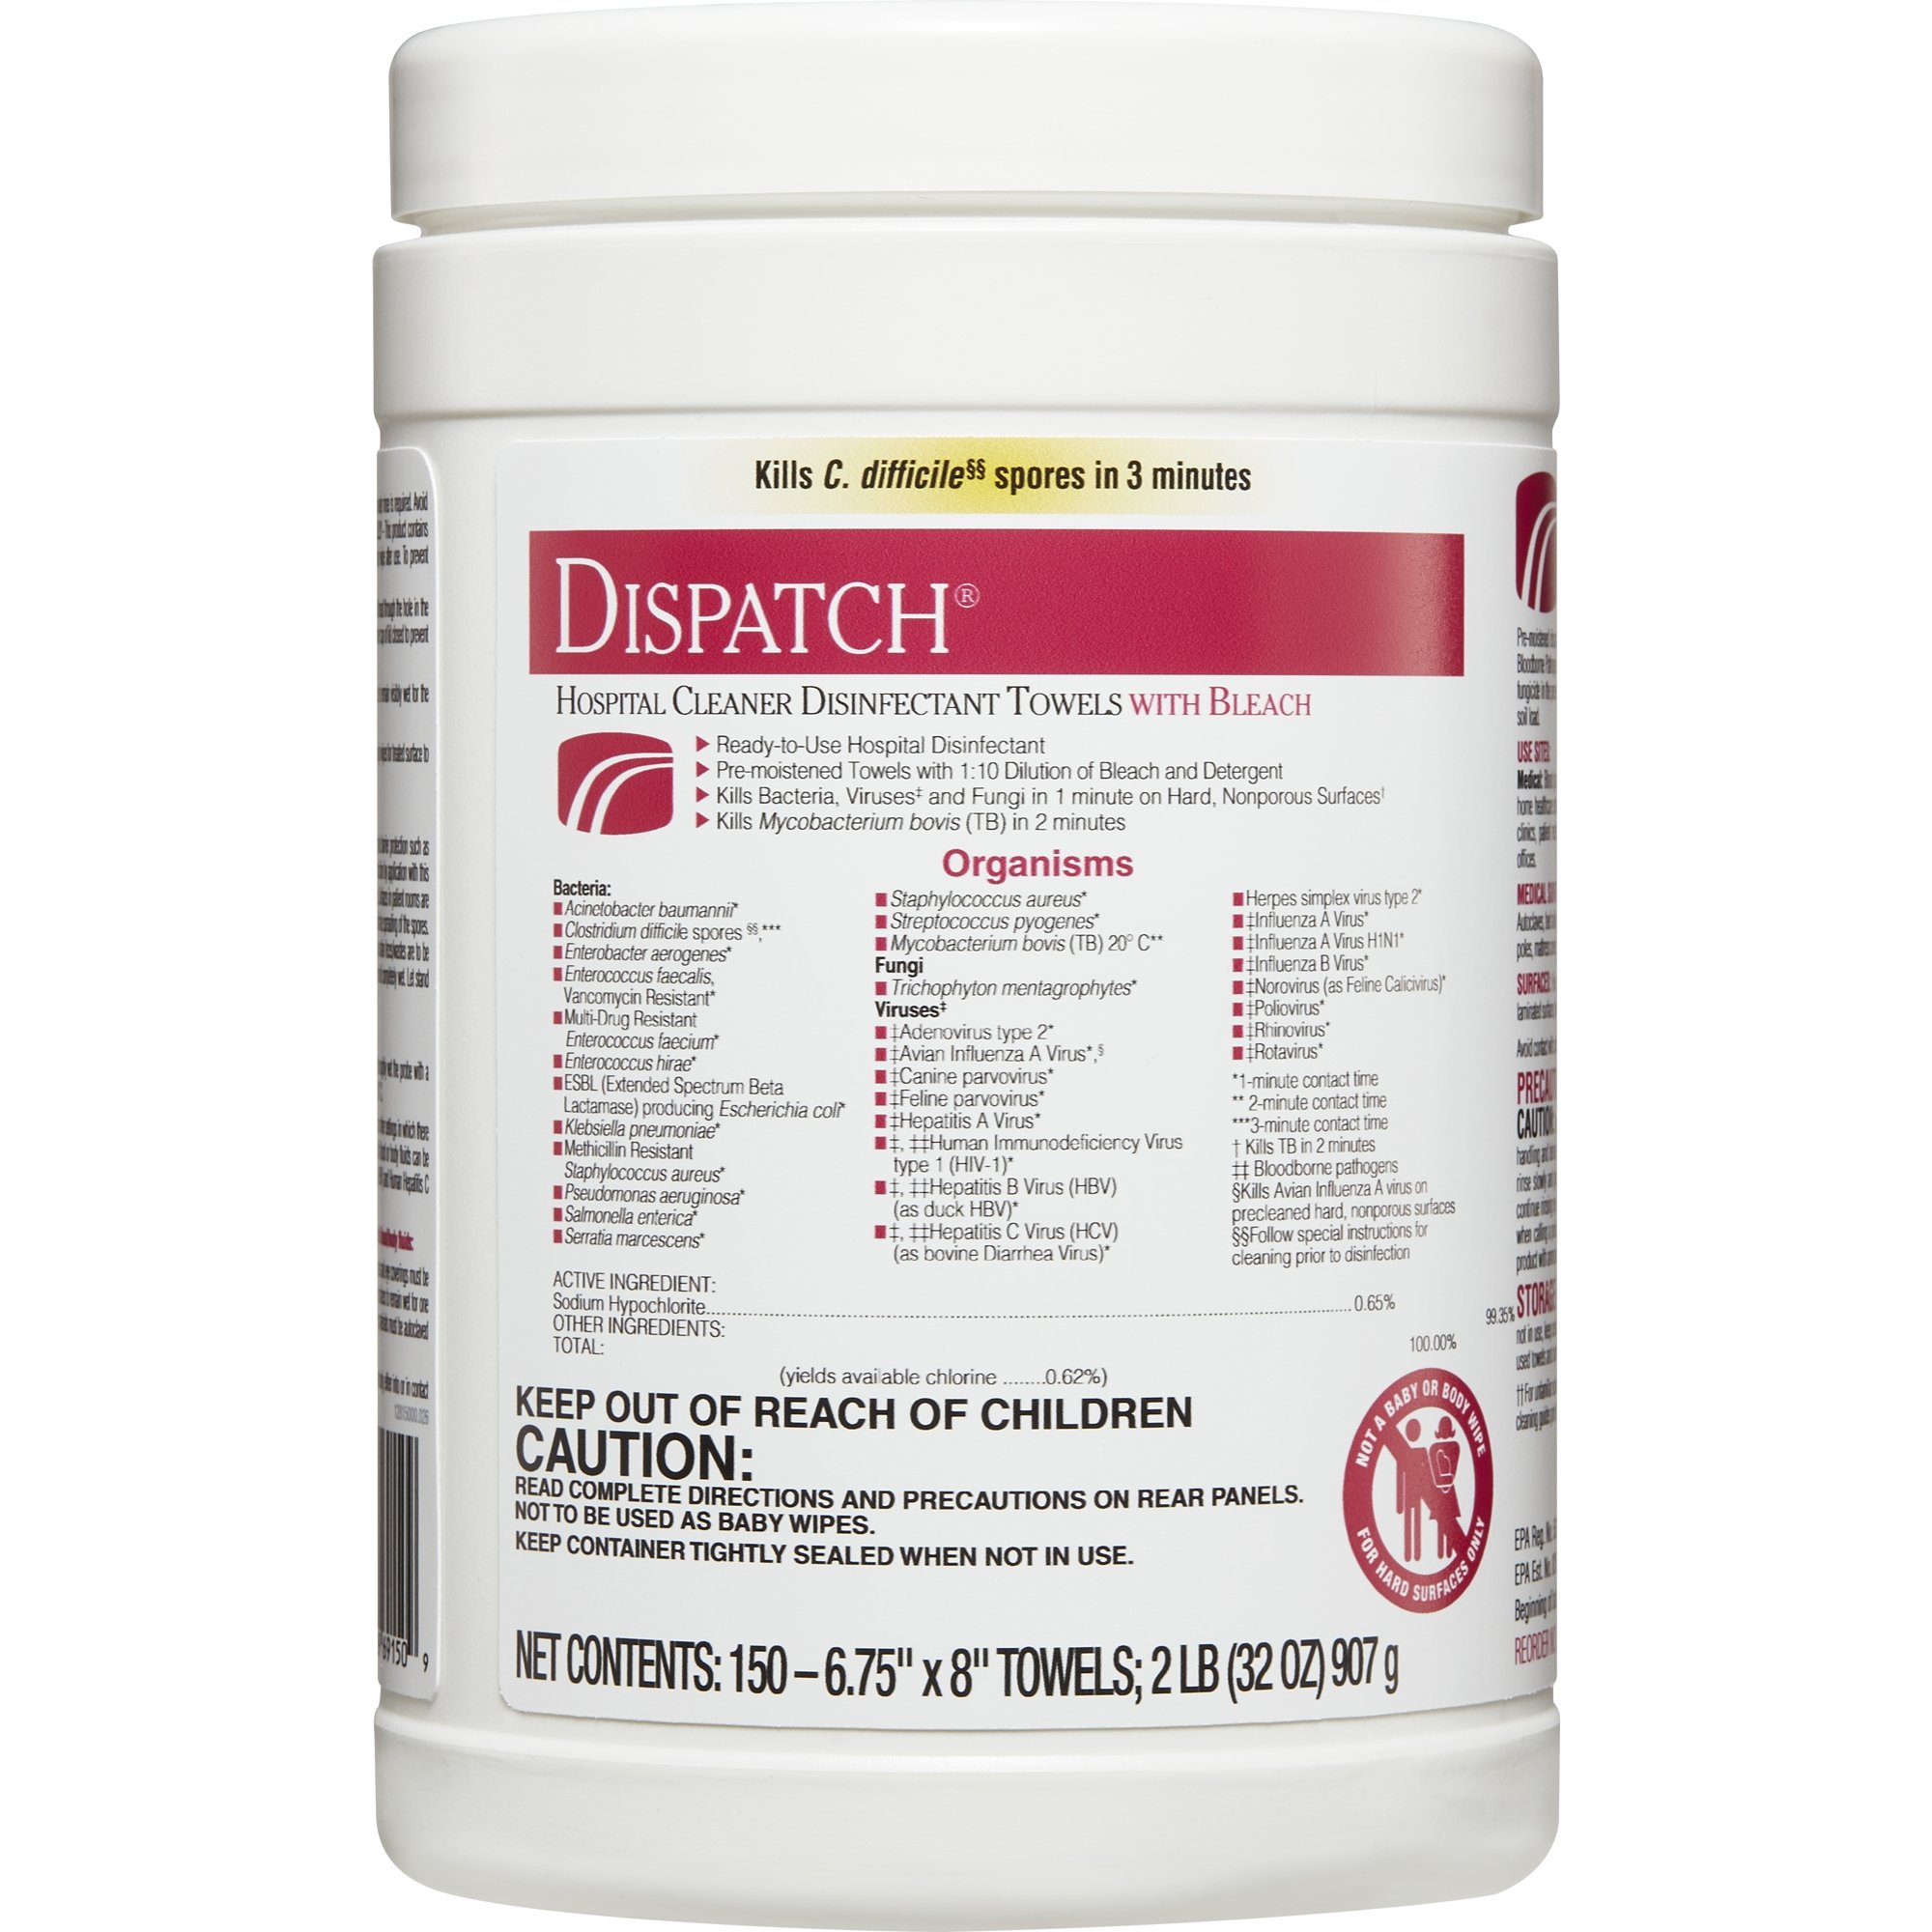 Dispatch Hospital Cleaner Disinfectant Towels with Bleach, 150 Count Canister, 8 Canisters/Case